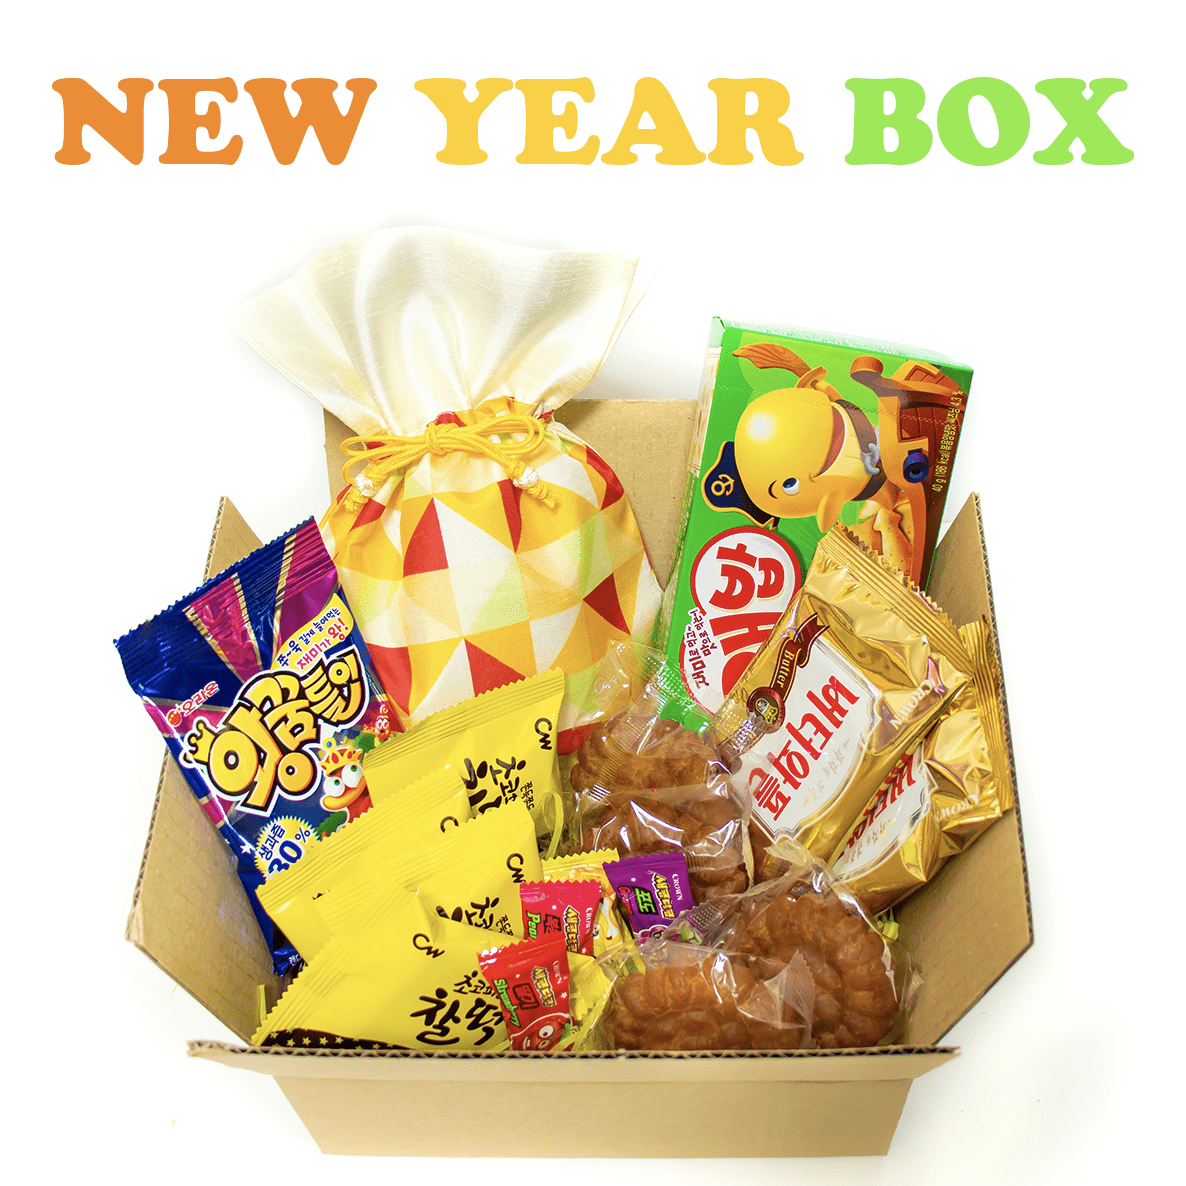 Korean Snacks Box January 2019 FULL Spoilers + Coupon!